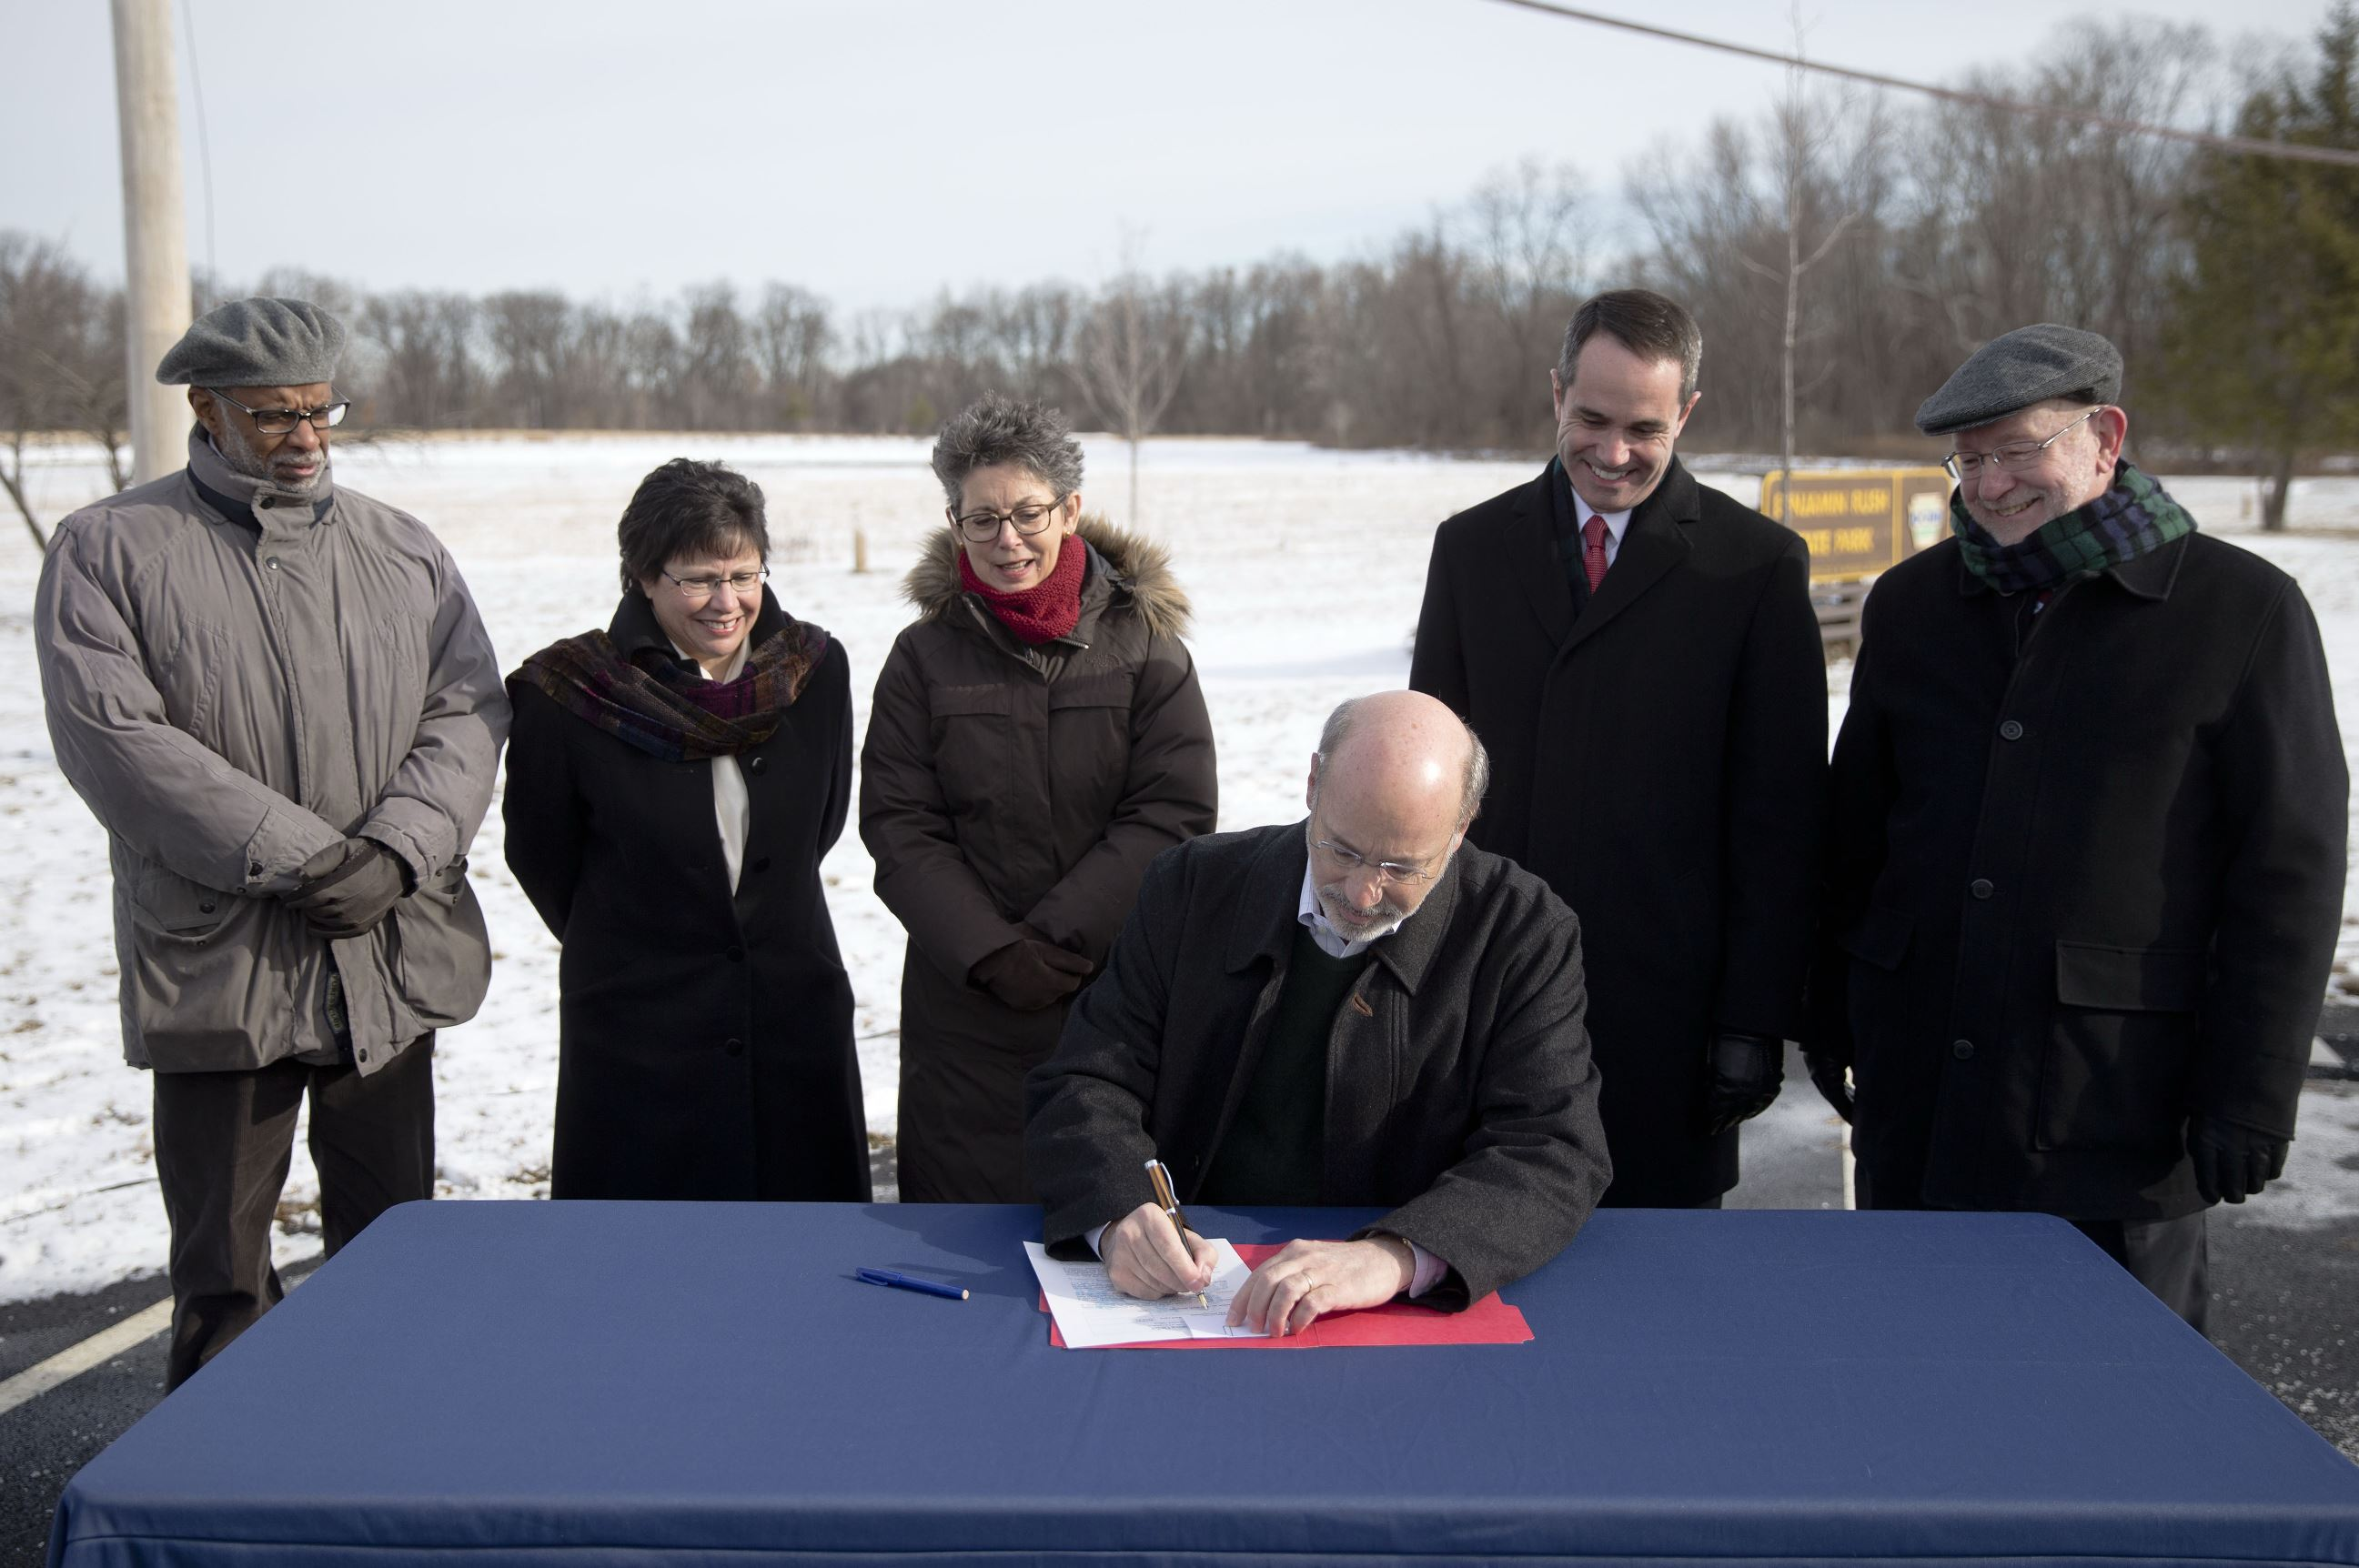 Pennsylvania Gov. Tom Wolf signs an executive order restoring a moratorium on new drilling leases involving public lands on 29 January 2015 at the Benjamin Rush State Park in Philadelphia. Credit: Matt Rourke/Associated Press.